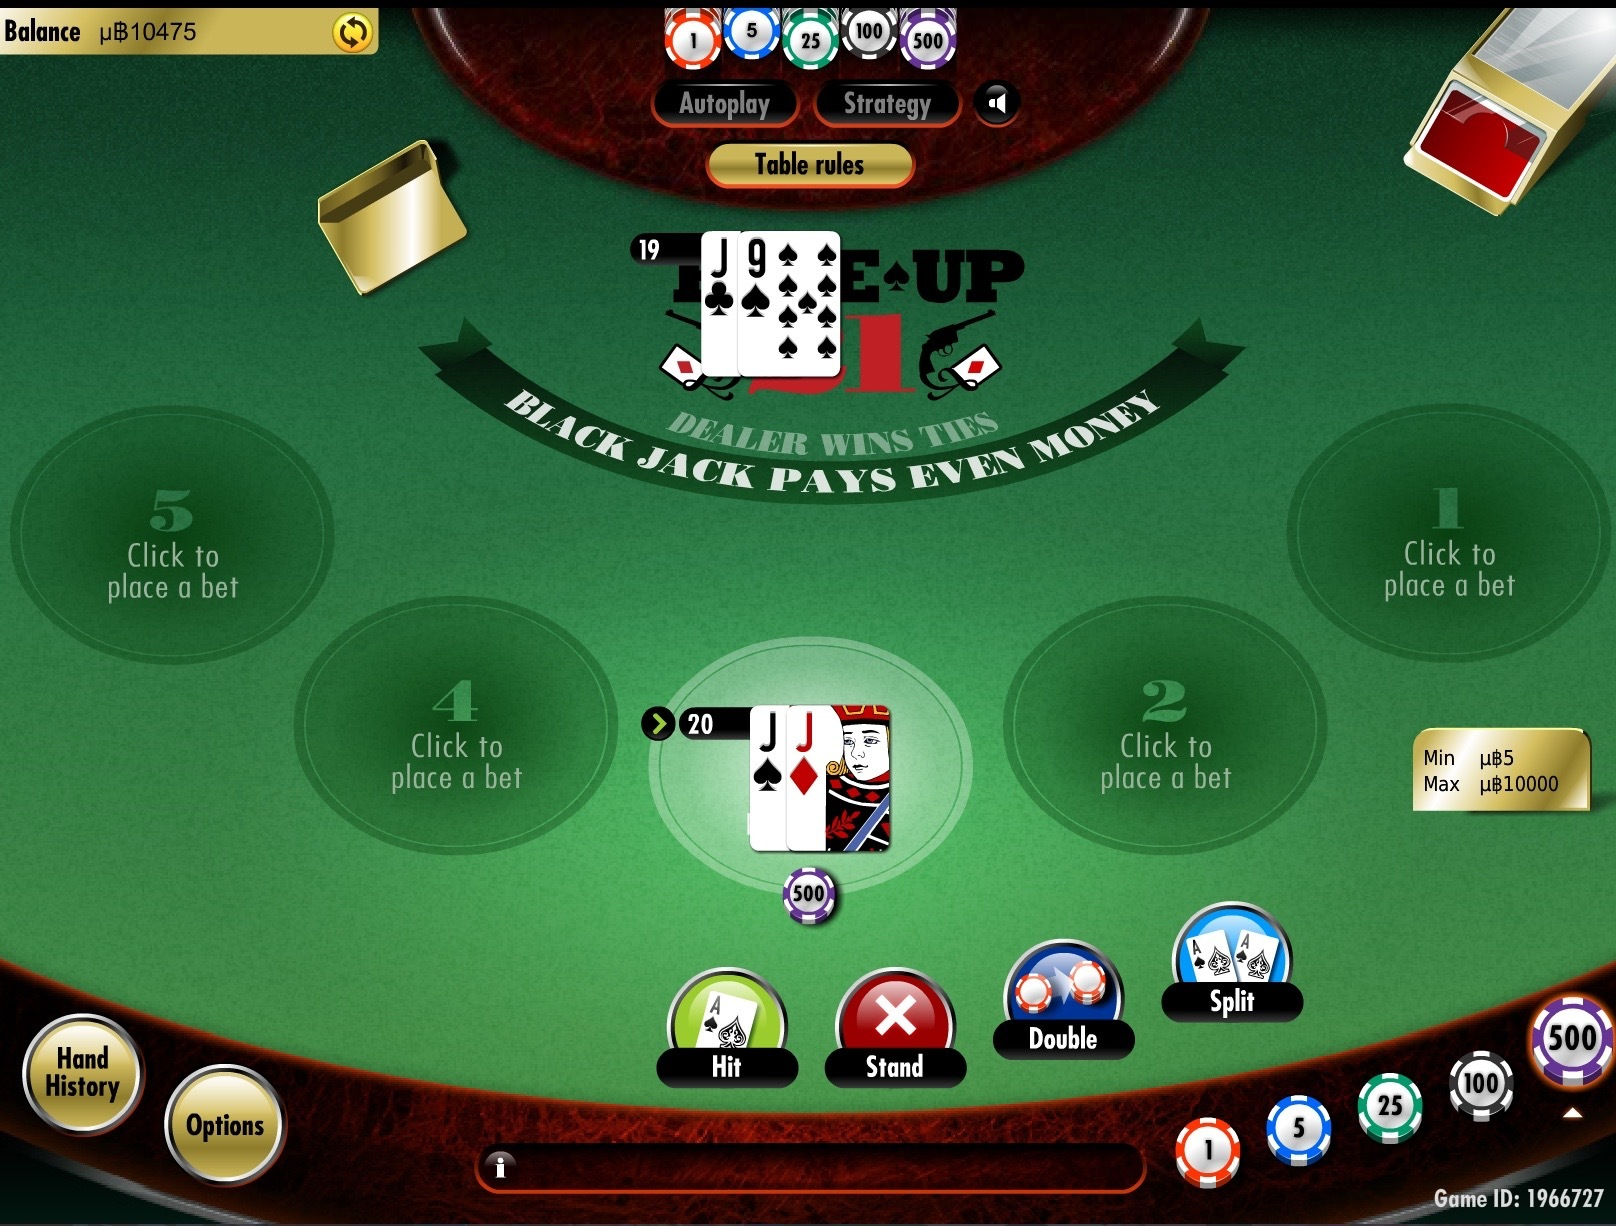 play 21 card game on Bspin